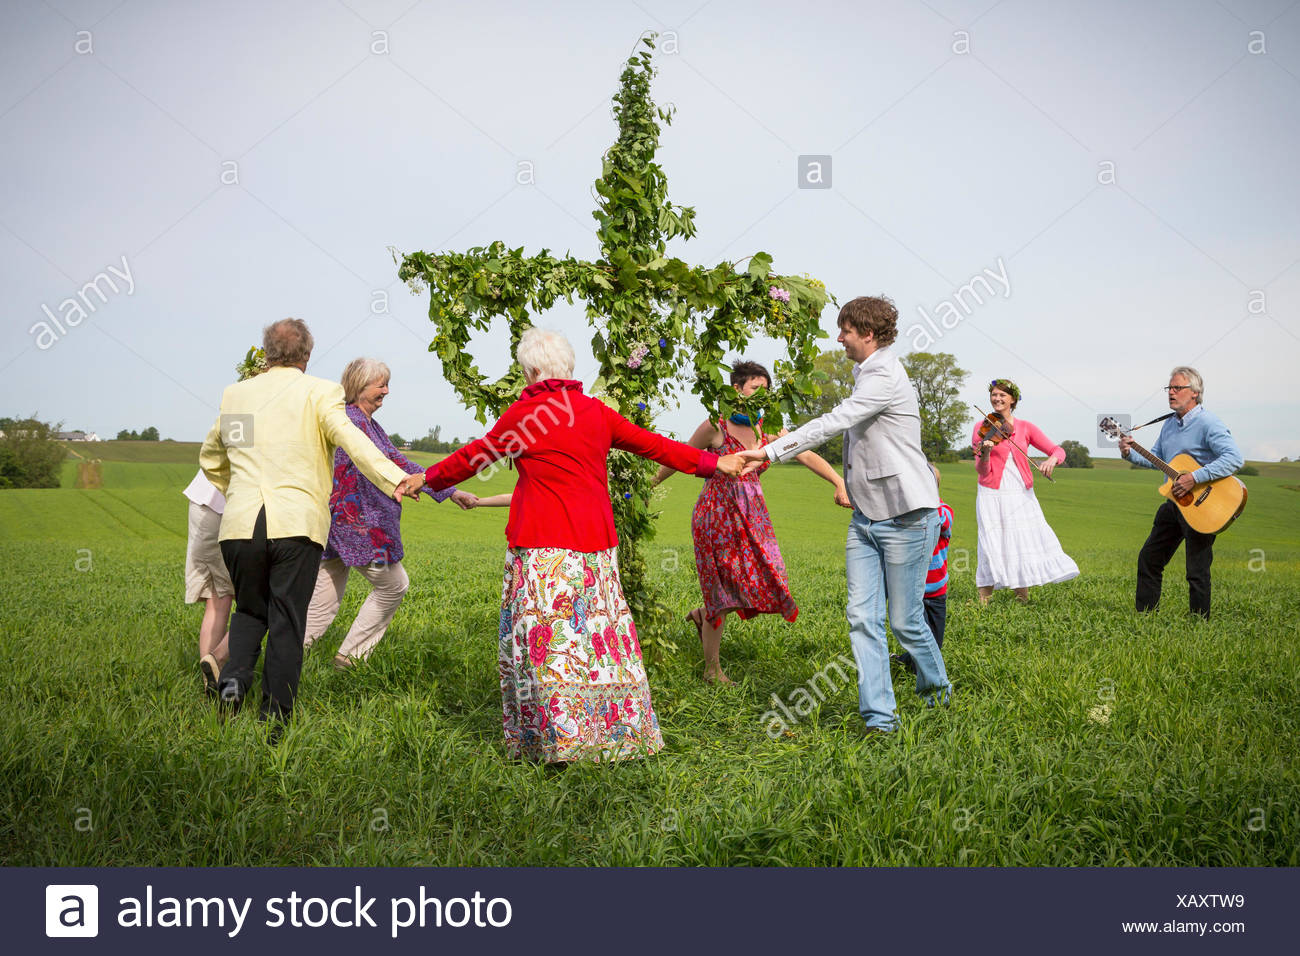 Sweden, Skane, Family with two children (6-7, 8-9) during midsummer celebrations - Stock Image